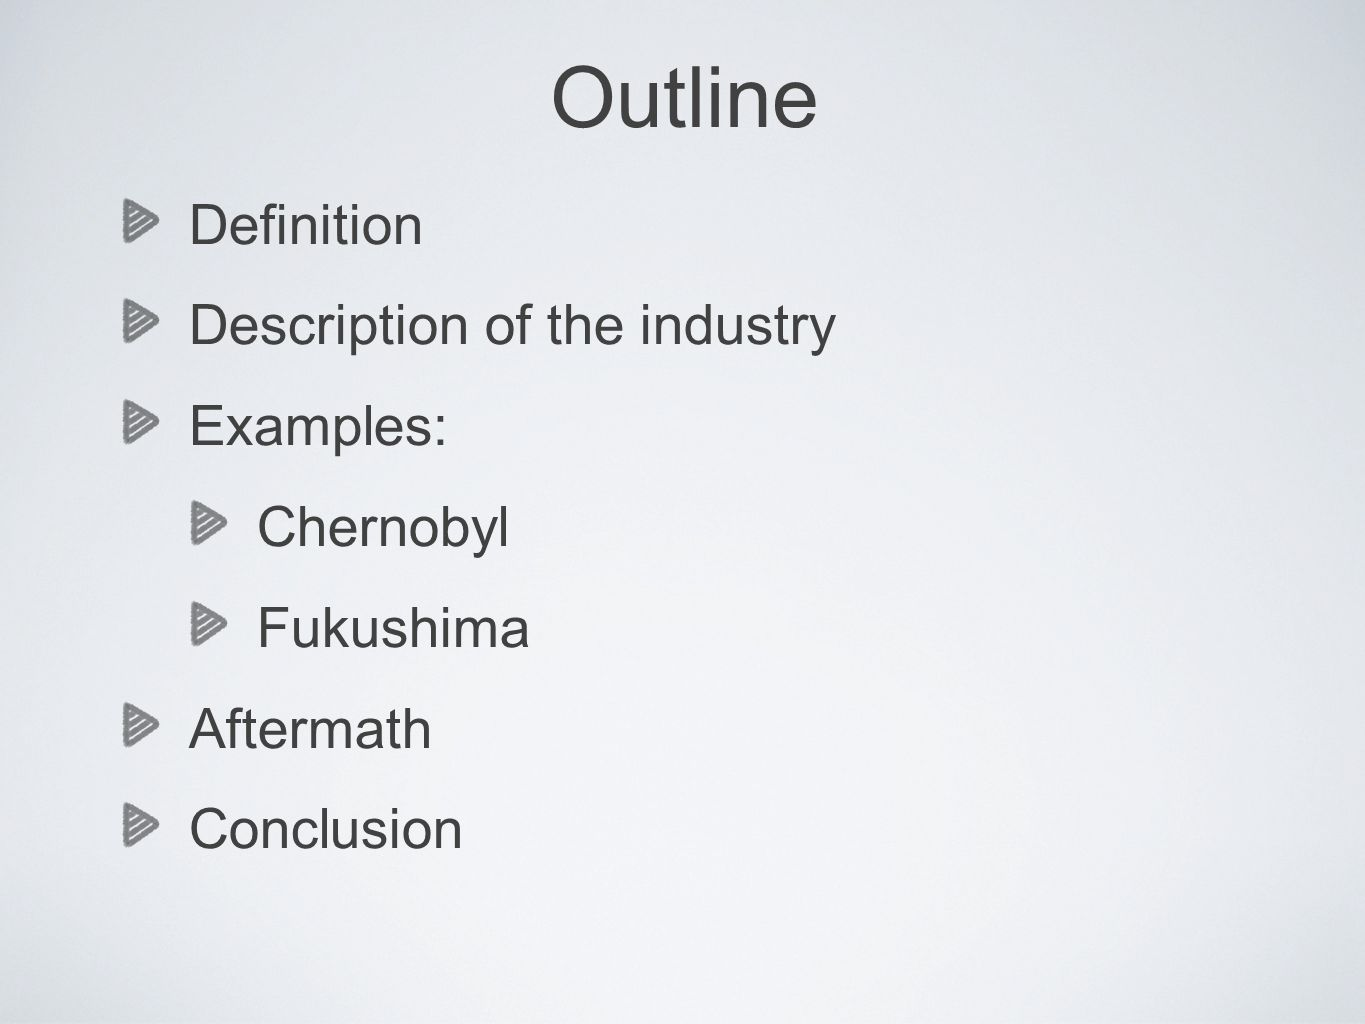 Outline Definition Description of the industry Examples: Chernobyl Fukushima Aftermath Conclusion